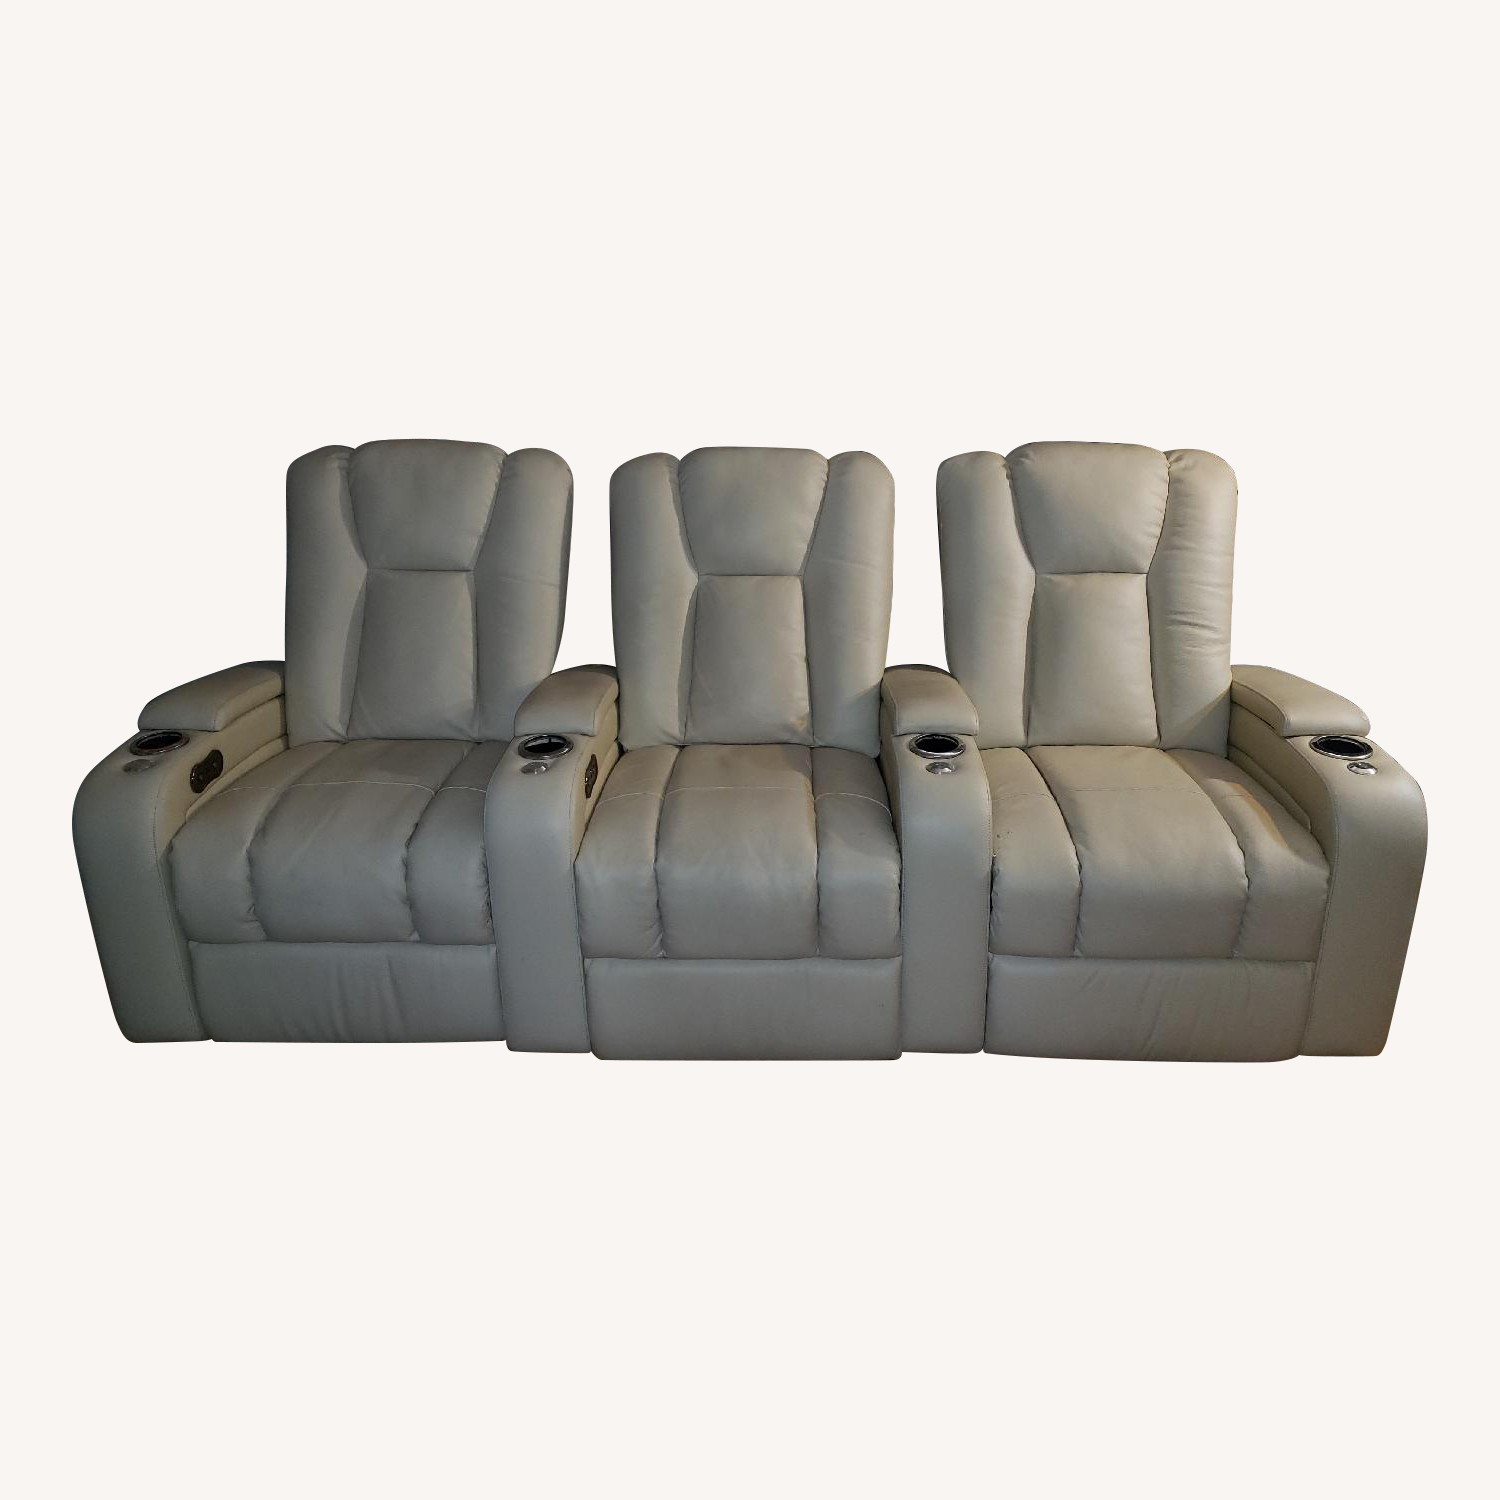 SeatCraft Signature Serenity Home Theater Chairs